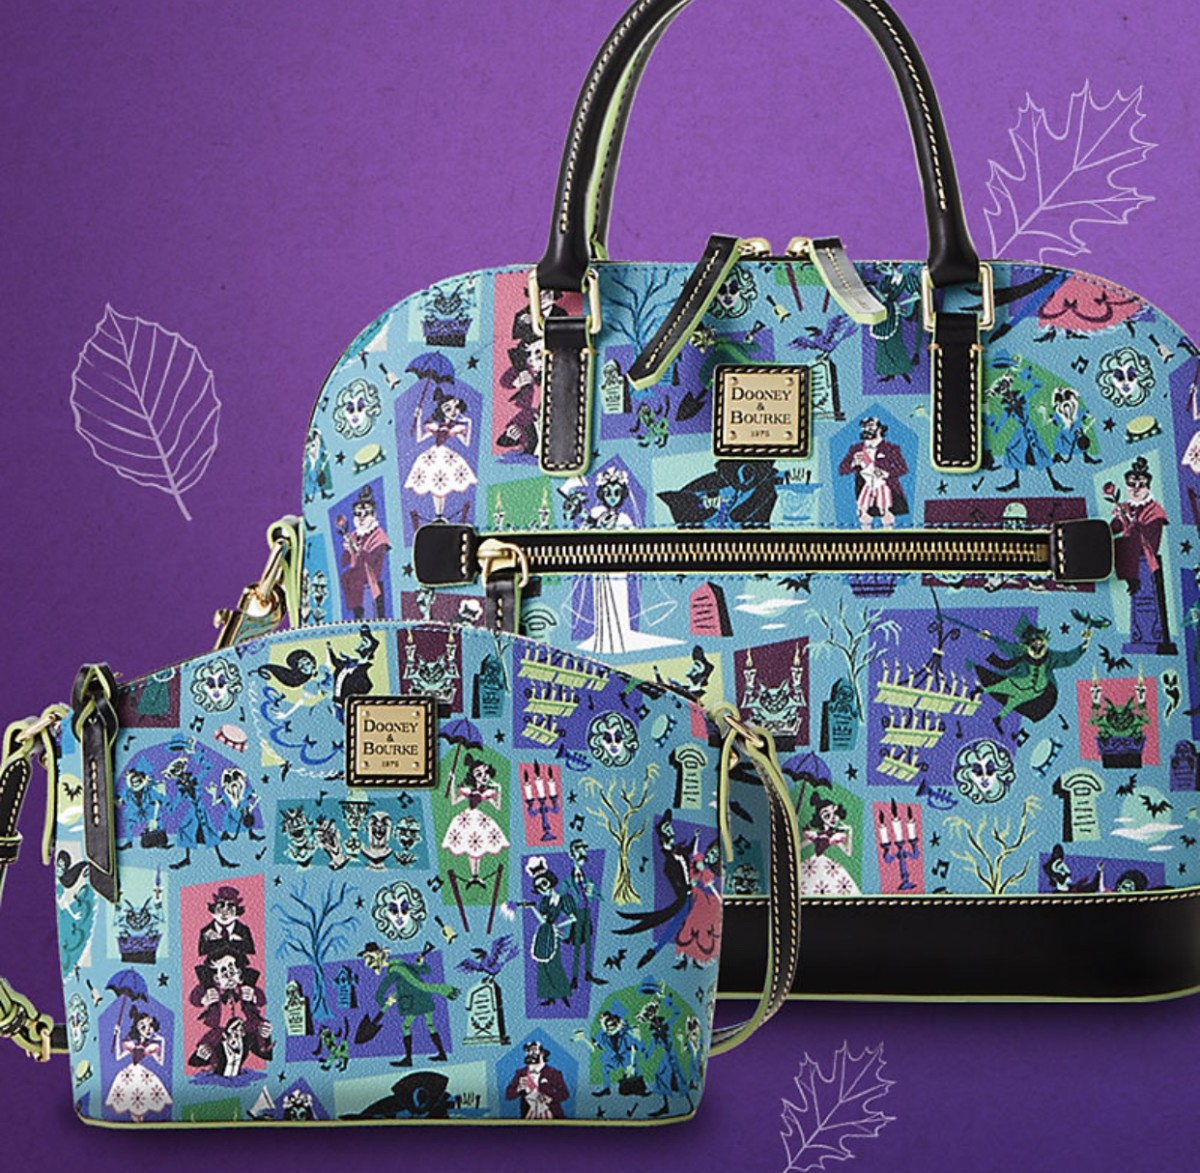 NEW! The Haunted Mansion by Dooney & Bourke 6